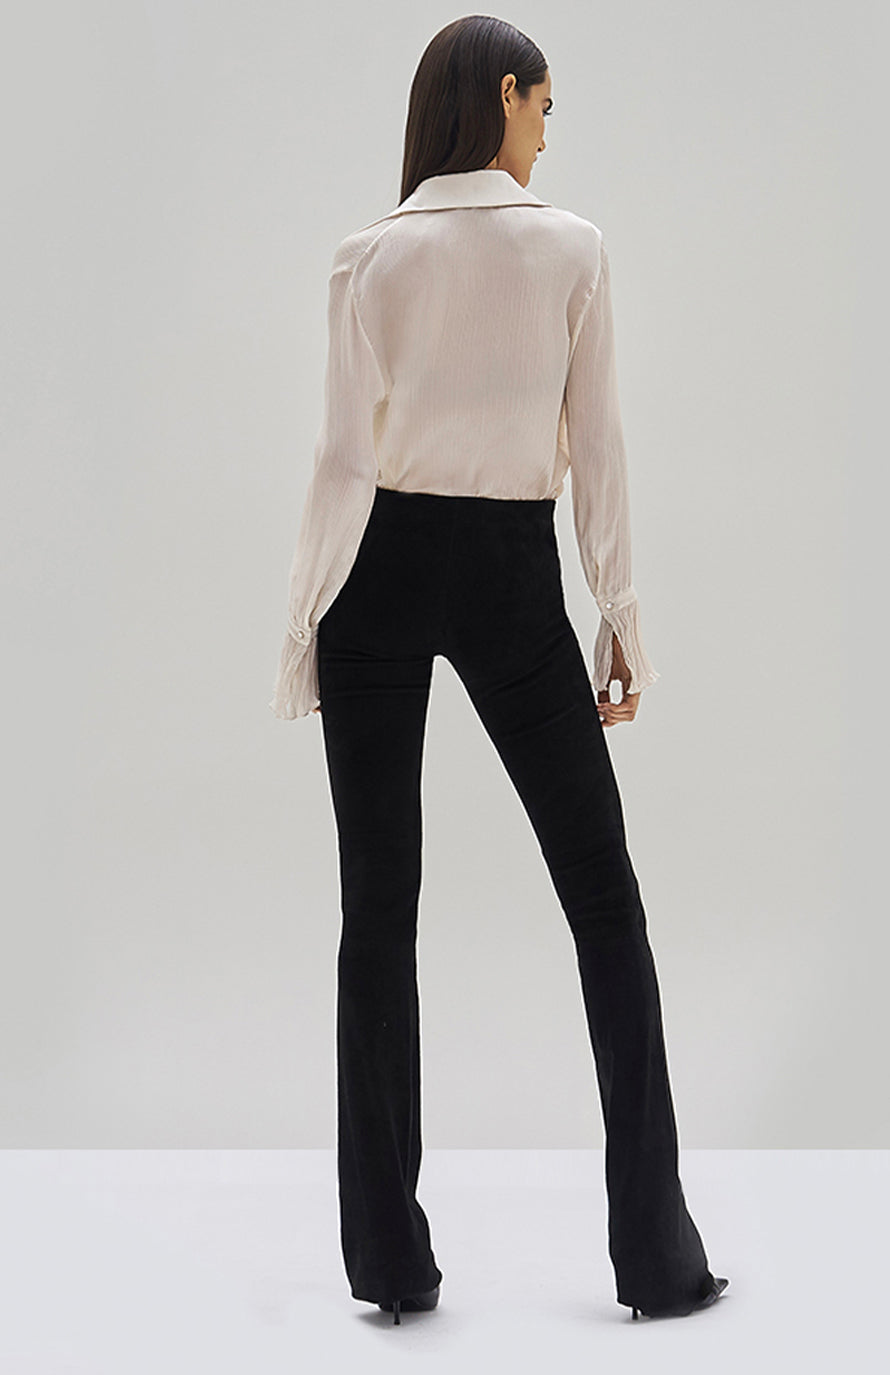 Alexis Attis Top and Upton Pant - Rear View